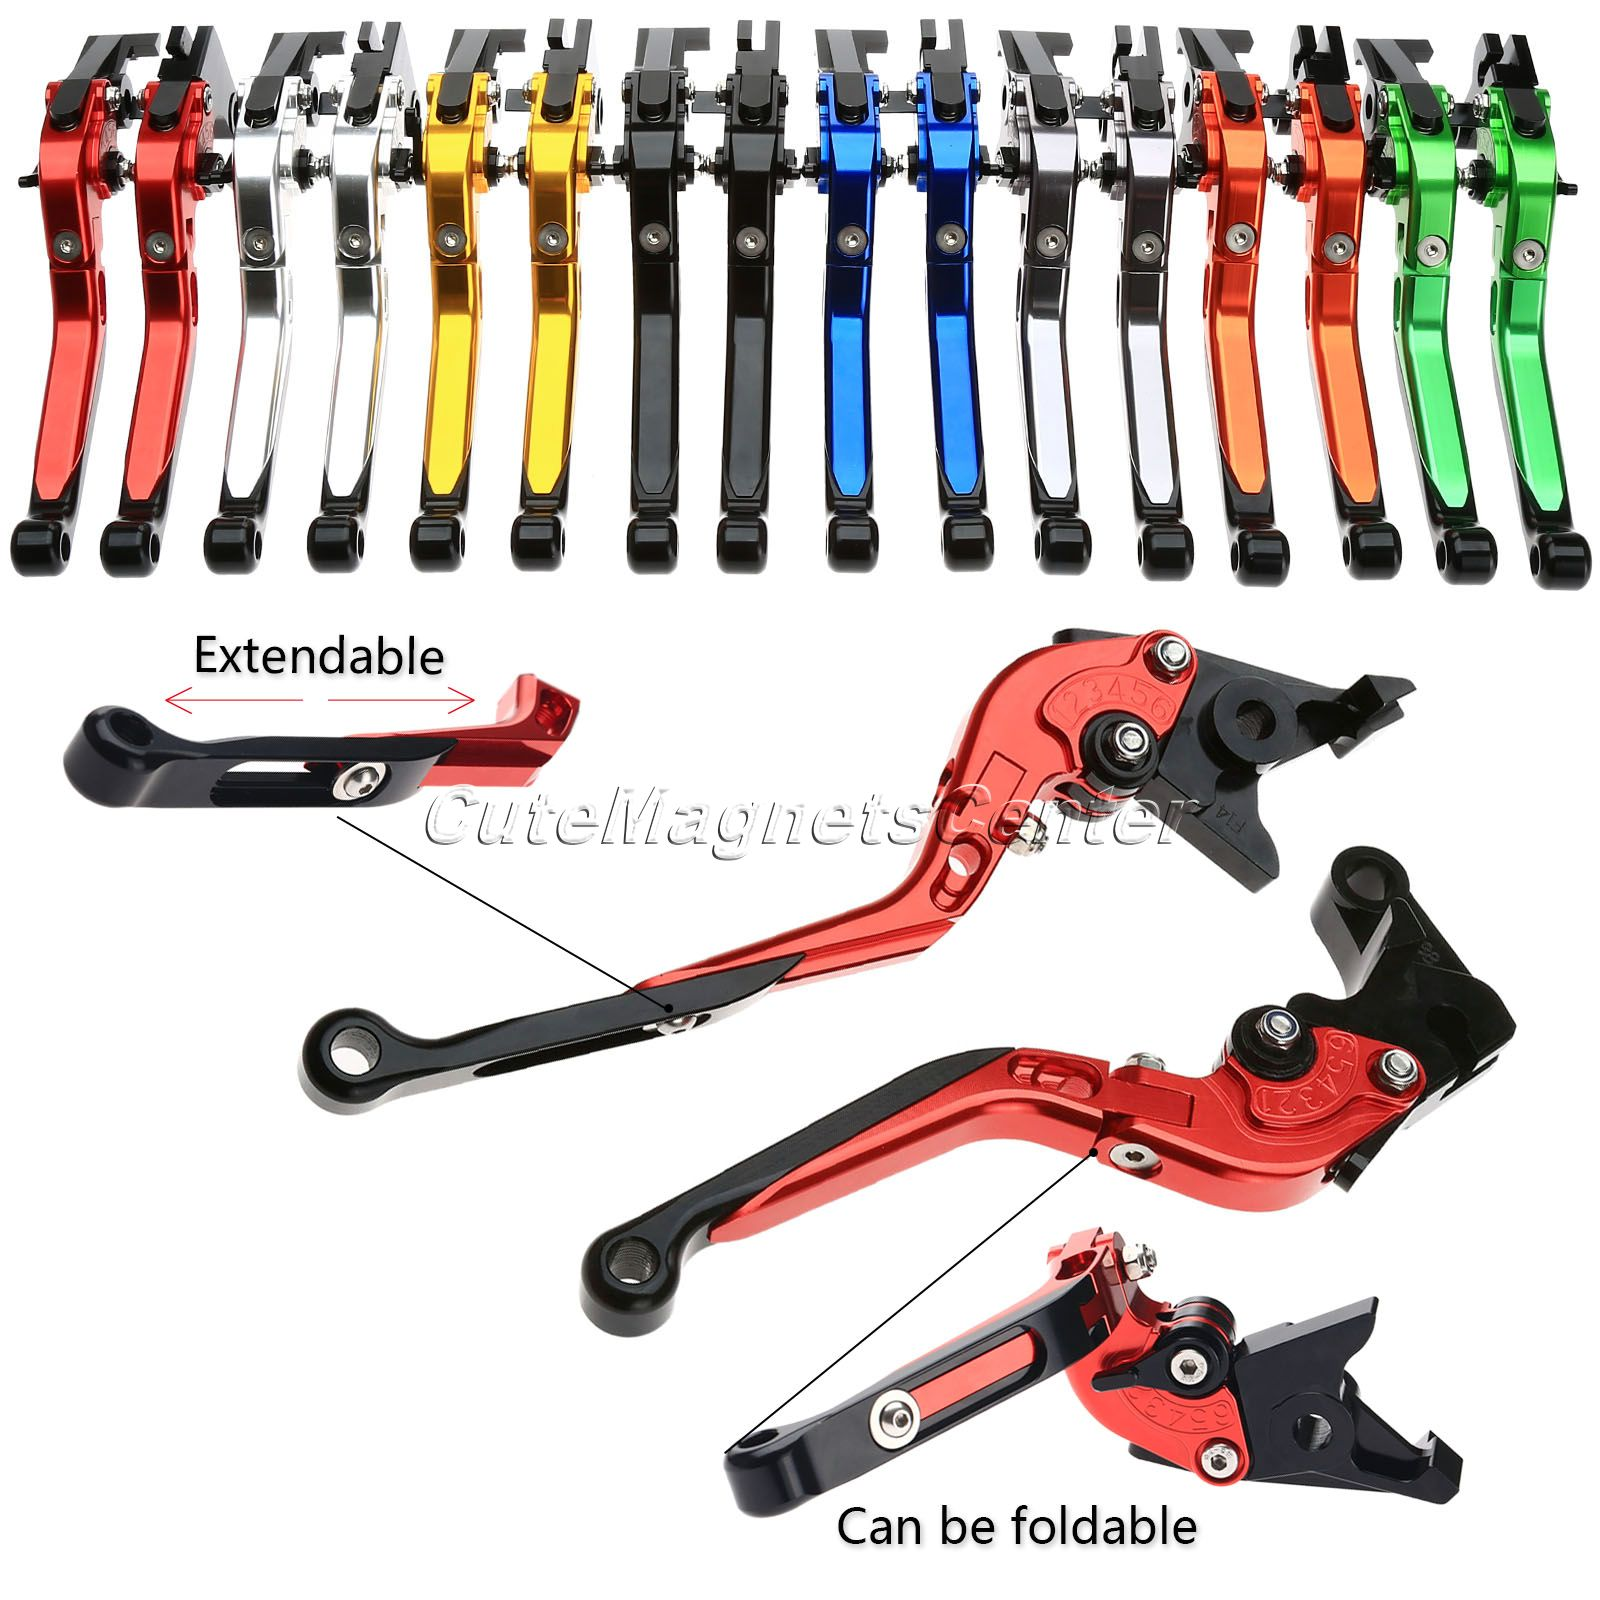 Mtsooning CNC Foldable Extendable Adjustable Motorbike Brake Clutch Levers for BMW S1000RR 2010-2014 BMW S1000R (w &w/o CC) bjmoto aluminum motorbike brake adjustable extendable cnc brakes clutch levers for bmw s1000rr 2015 2017 s1000r 2015 2016